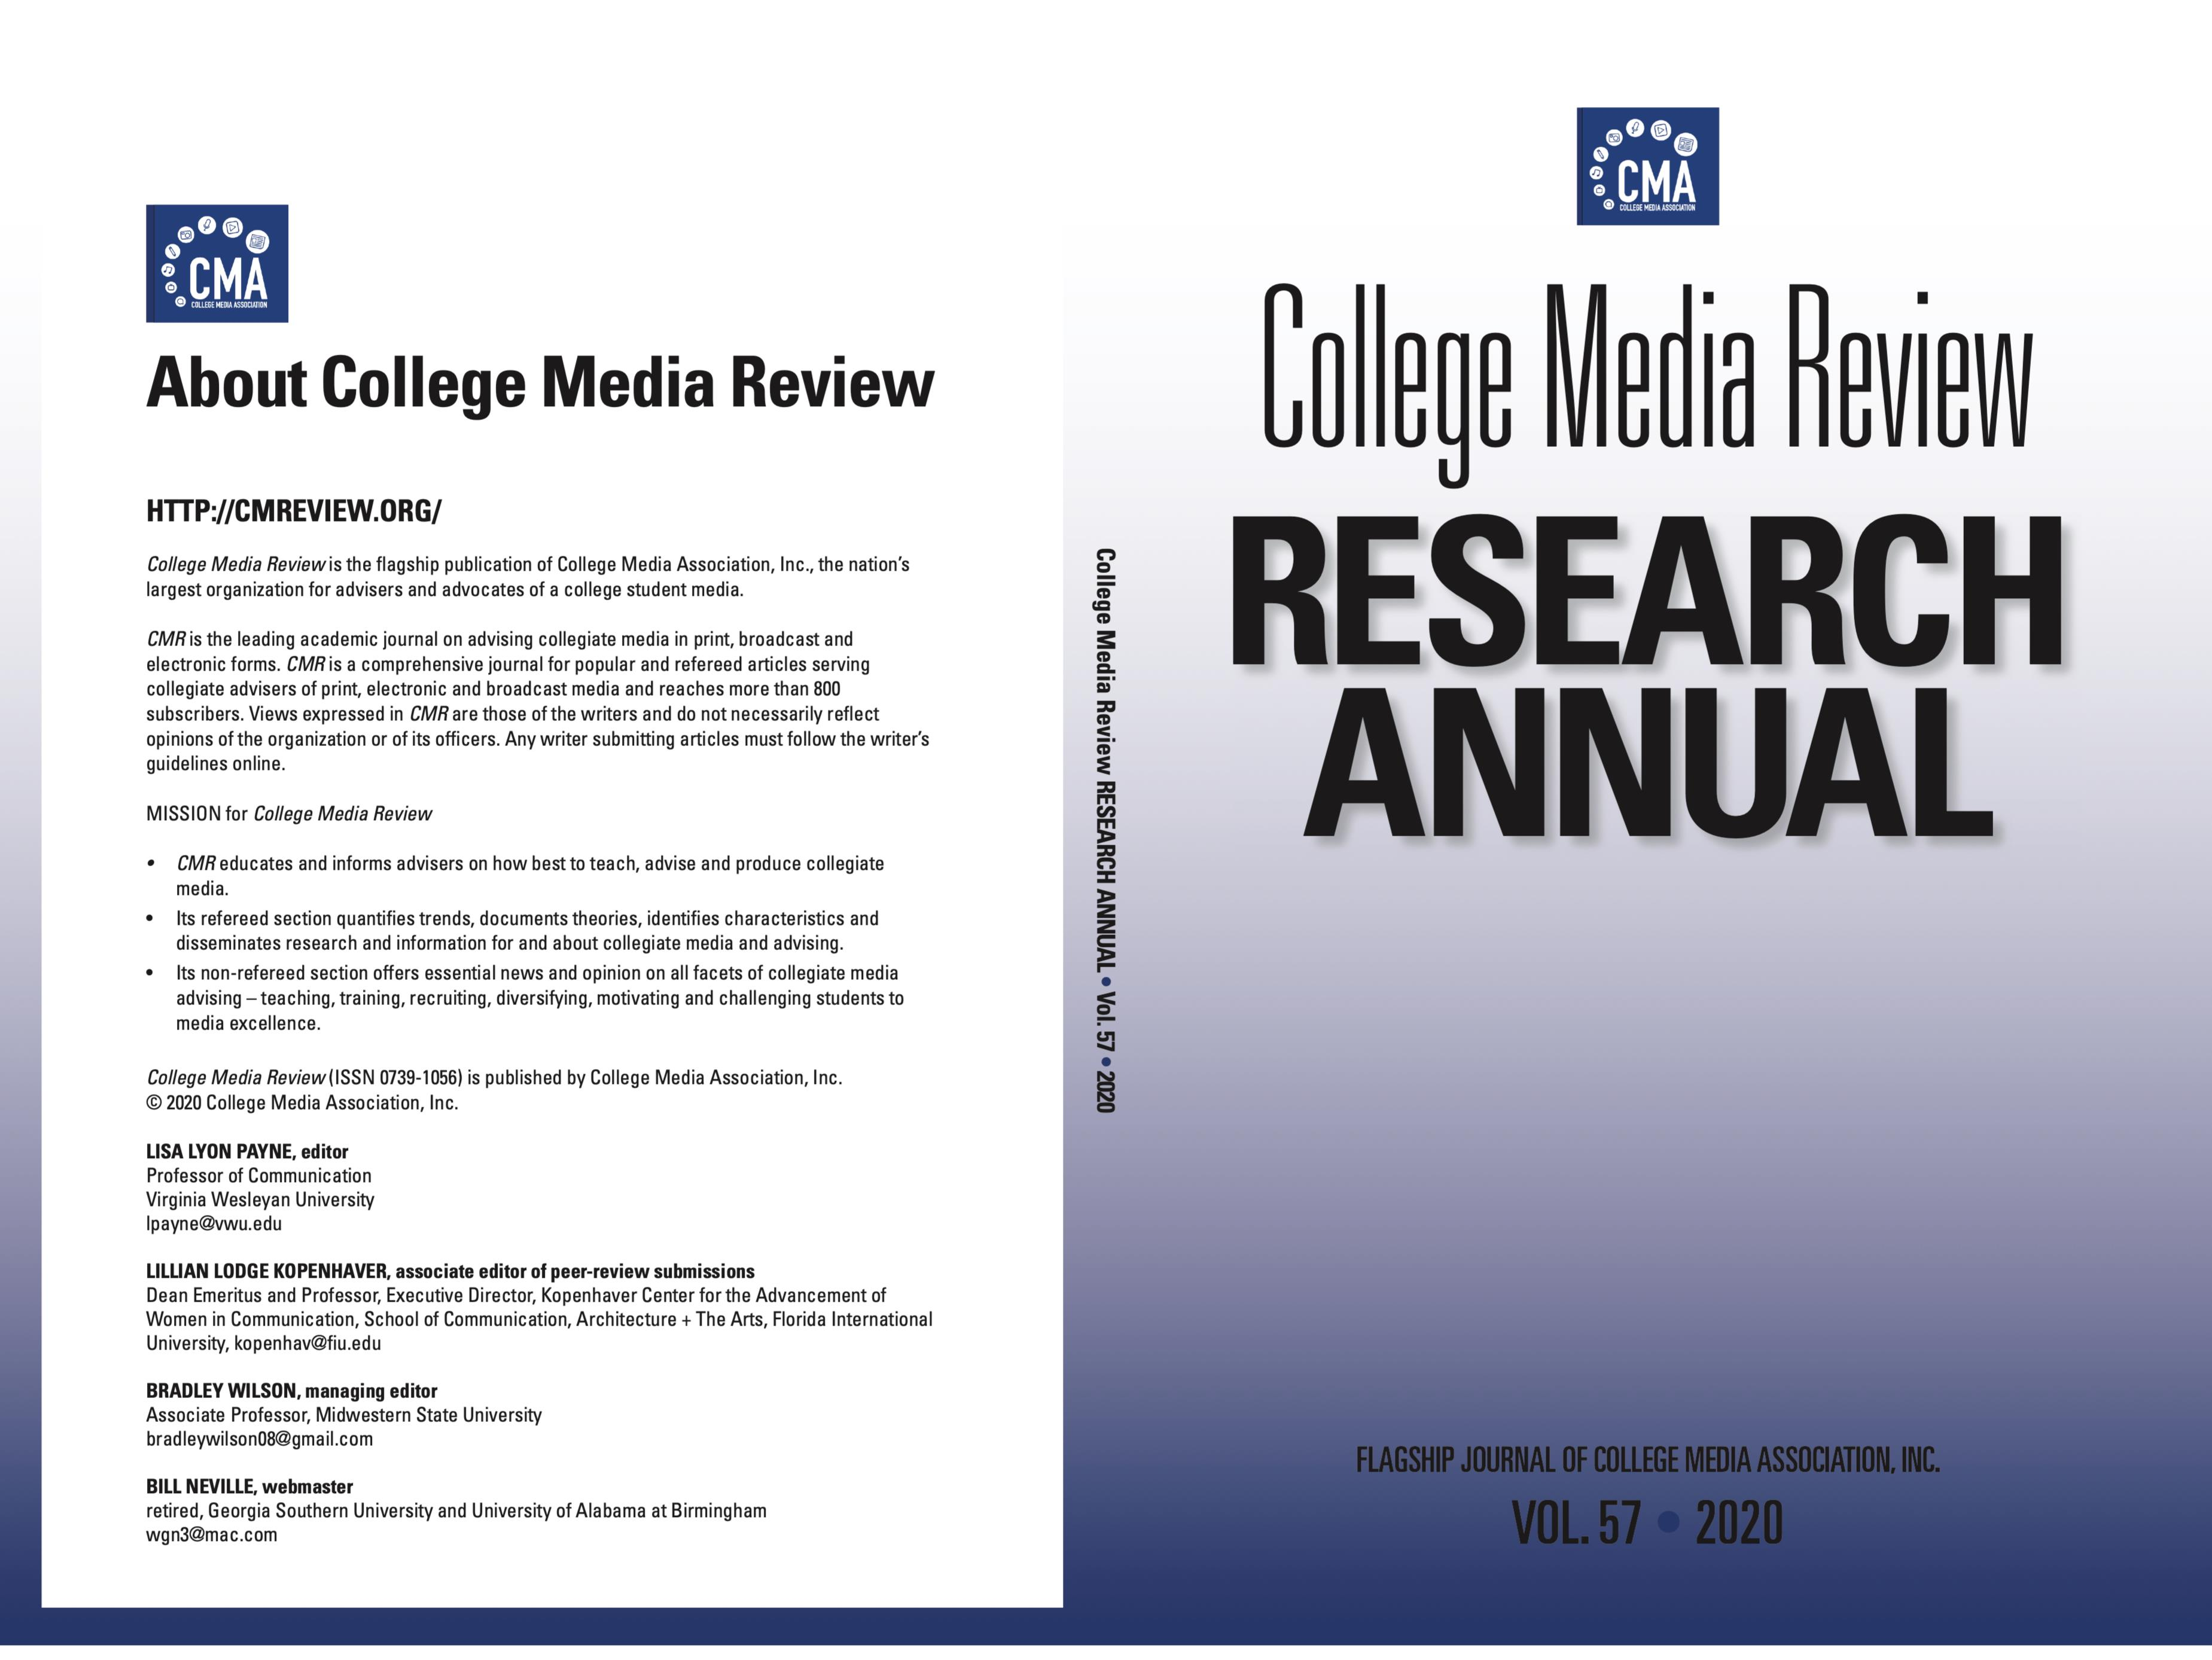 College Media Review Research Annual 2020 cover image